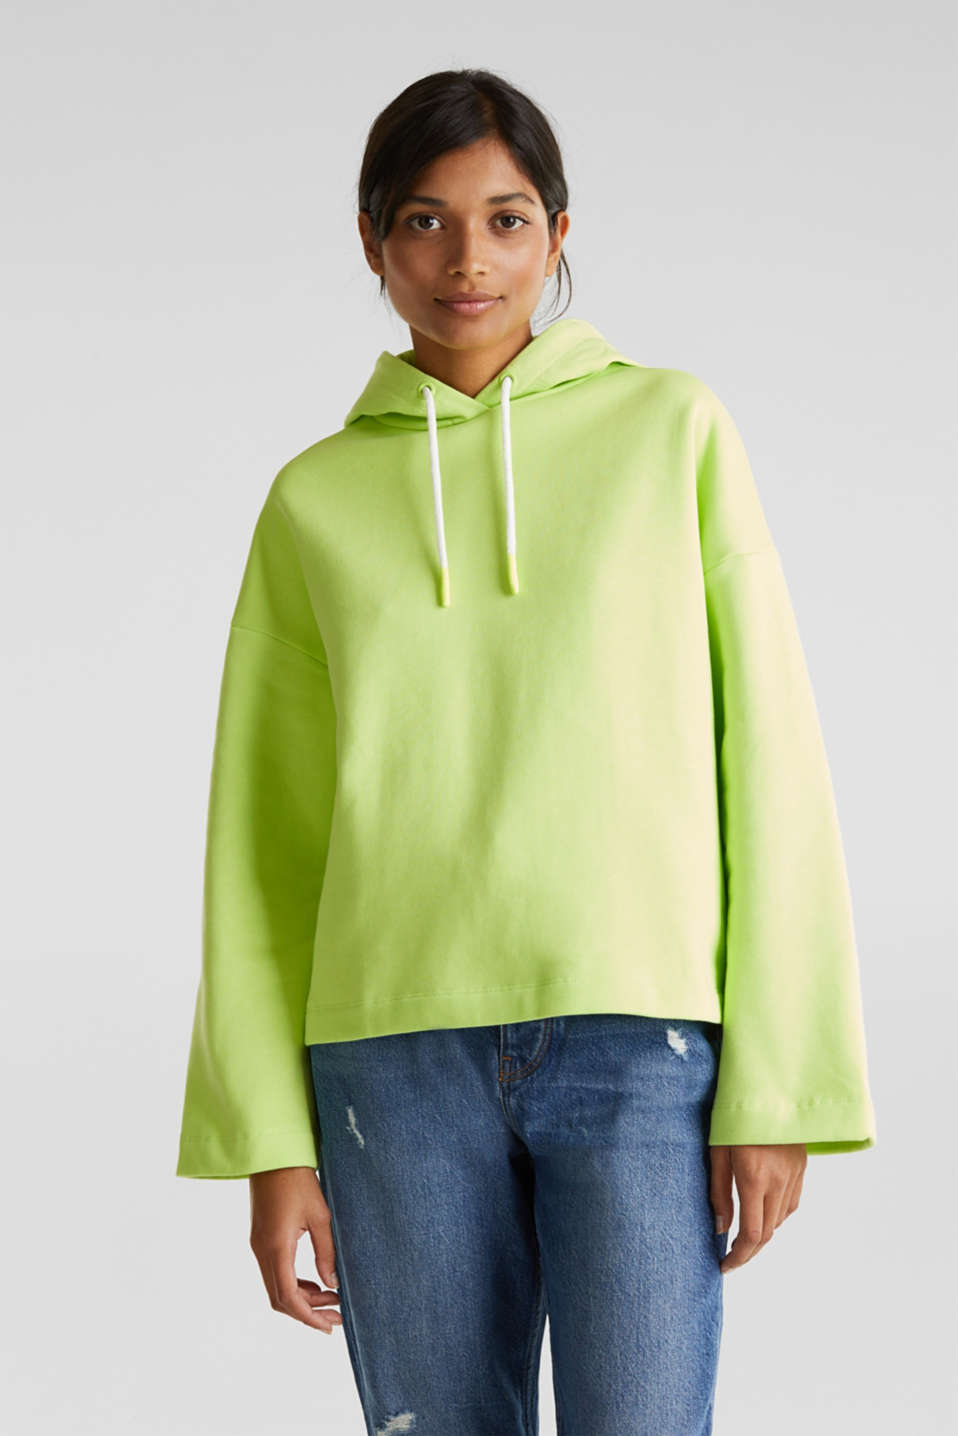 NEON boxy sweatshirt with a hood, 100% cotton, LIME YELLOW, detail image number 0